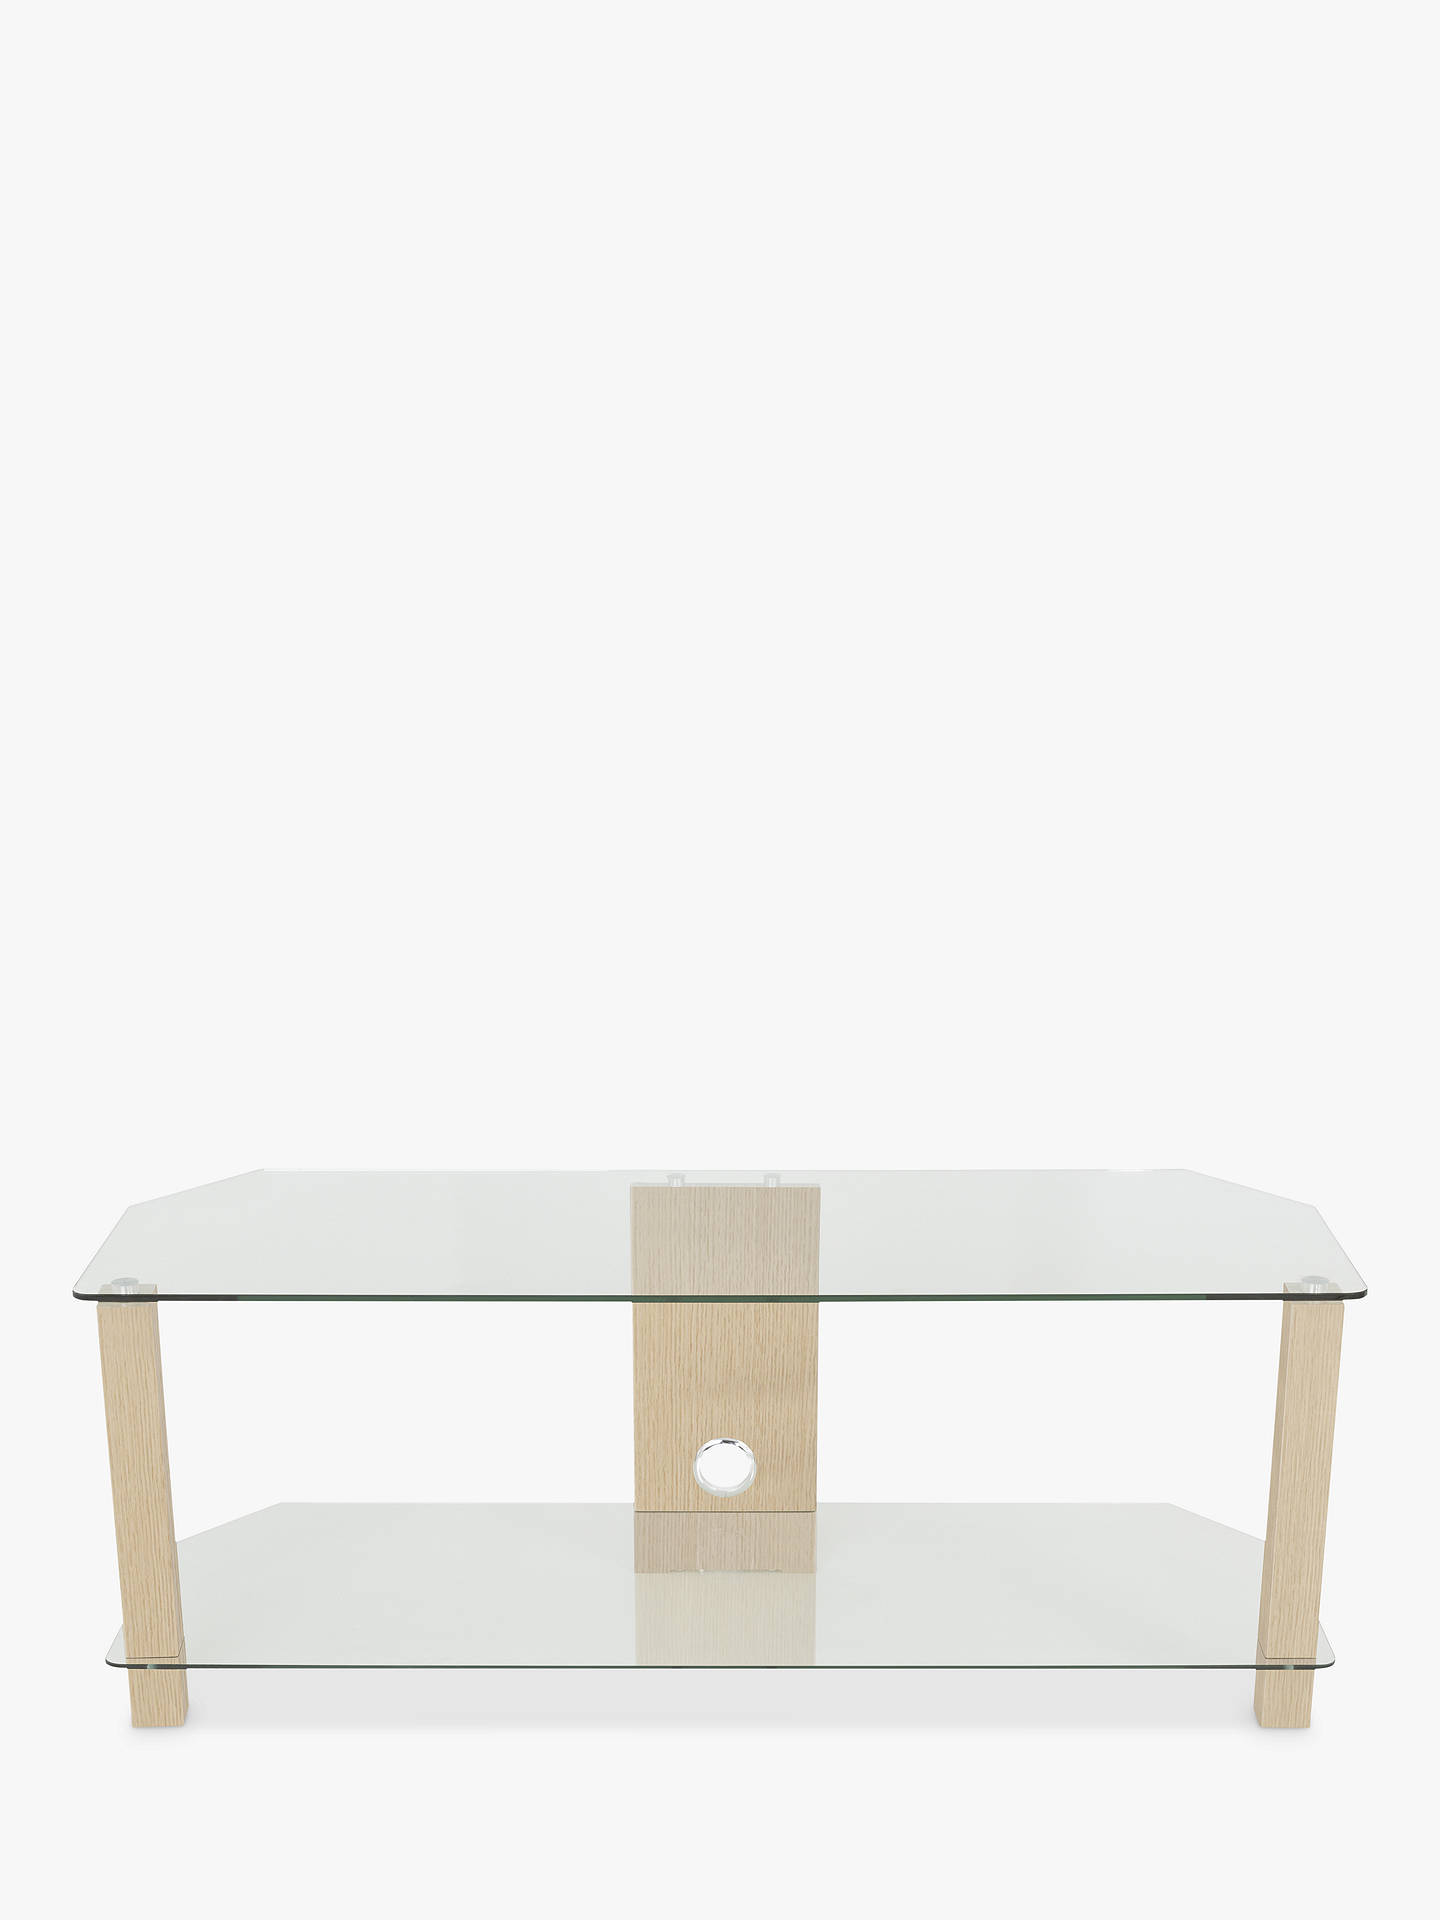 new product 0cdc5 9e771 John Lewis & Partners WG1200 TV Stand for TVs up to 60